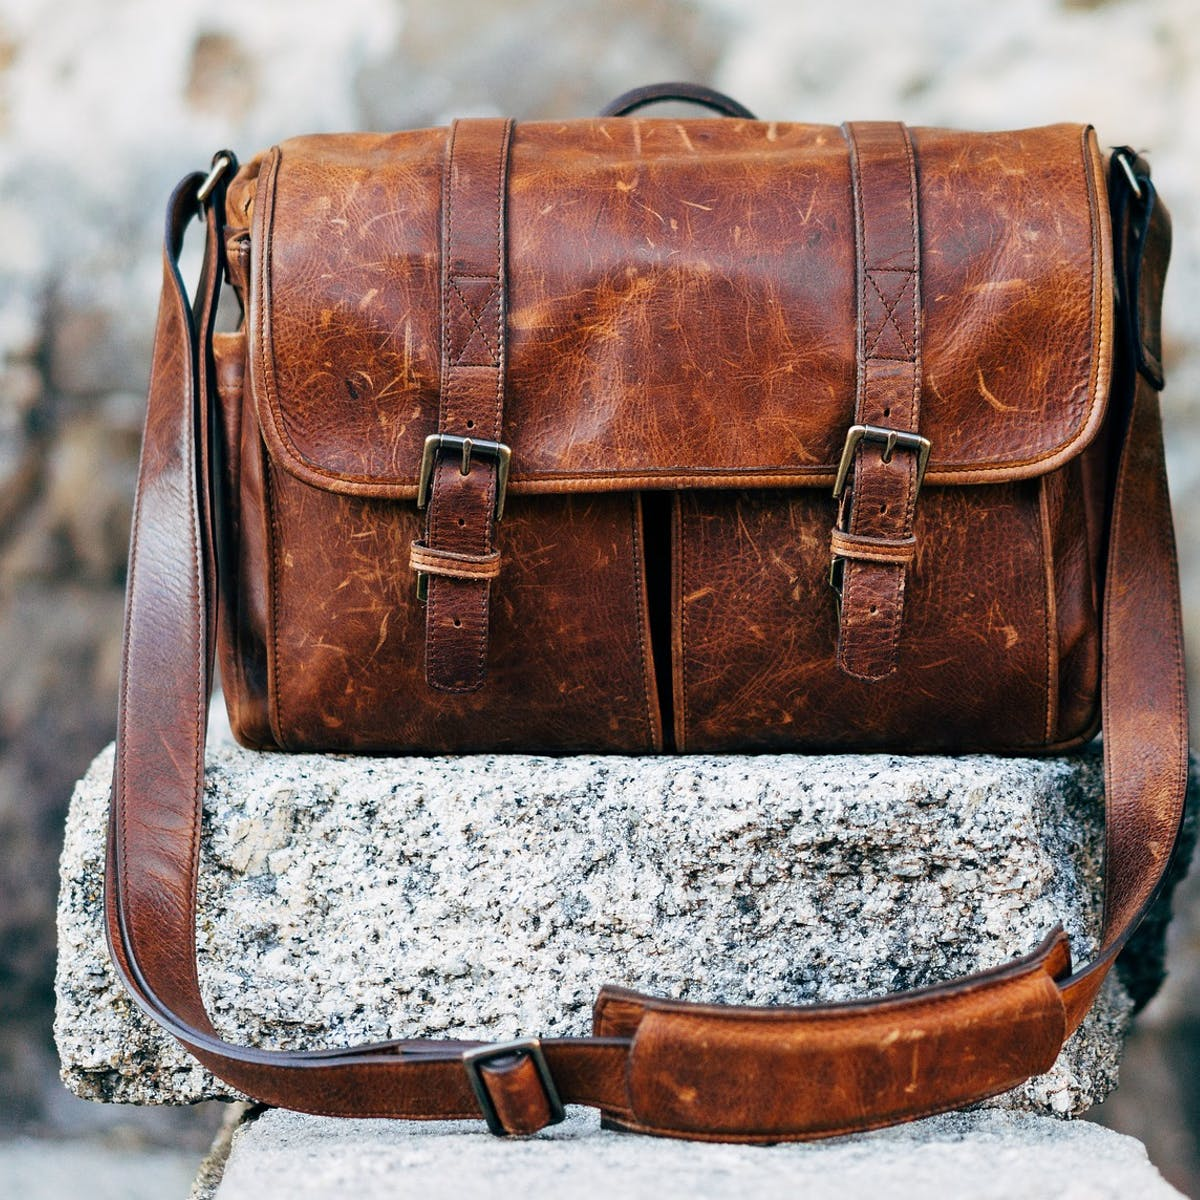 These Messenger Bags Are Cheaper Than You Think